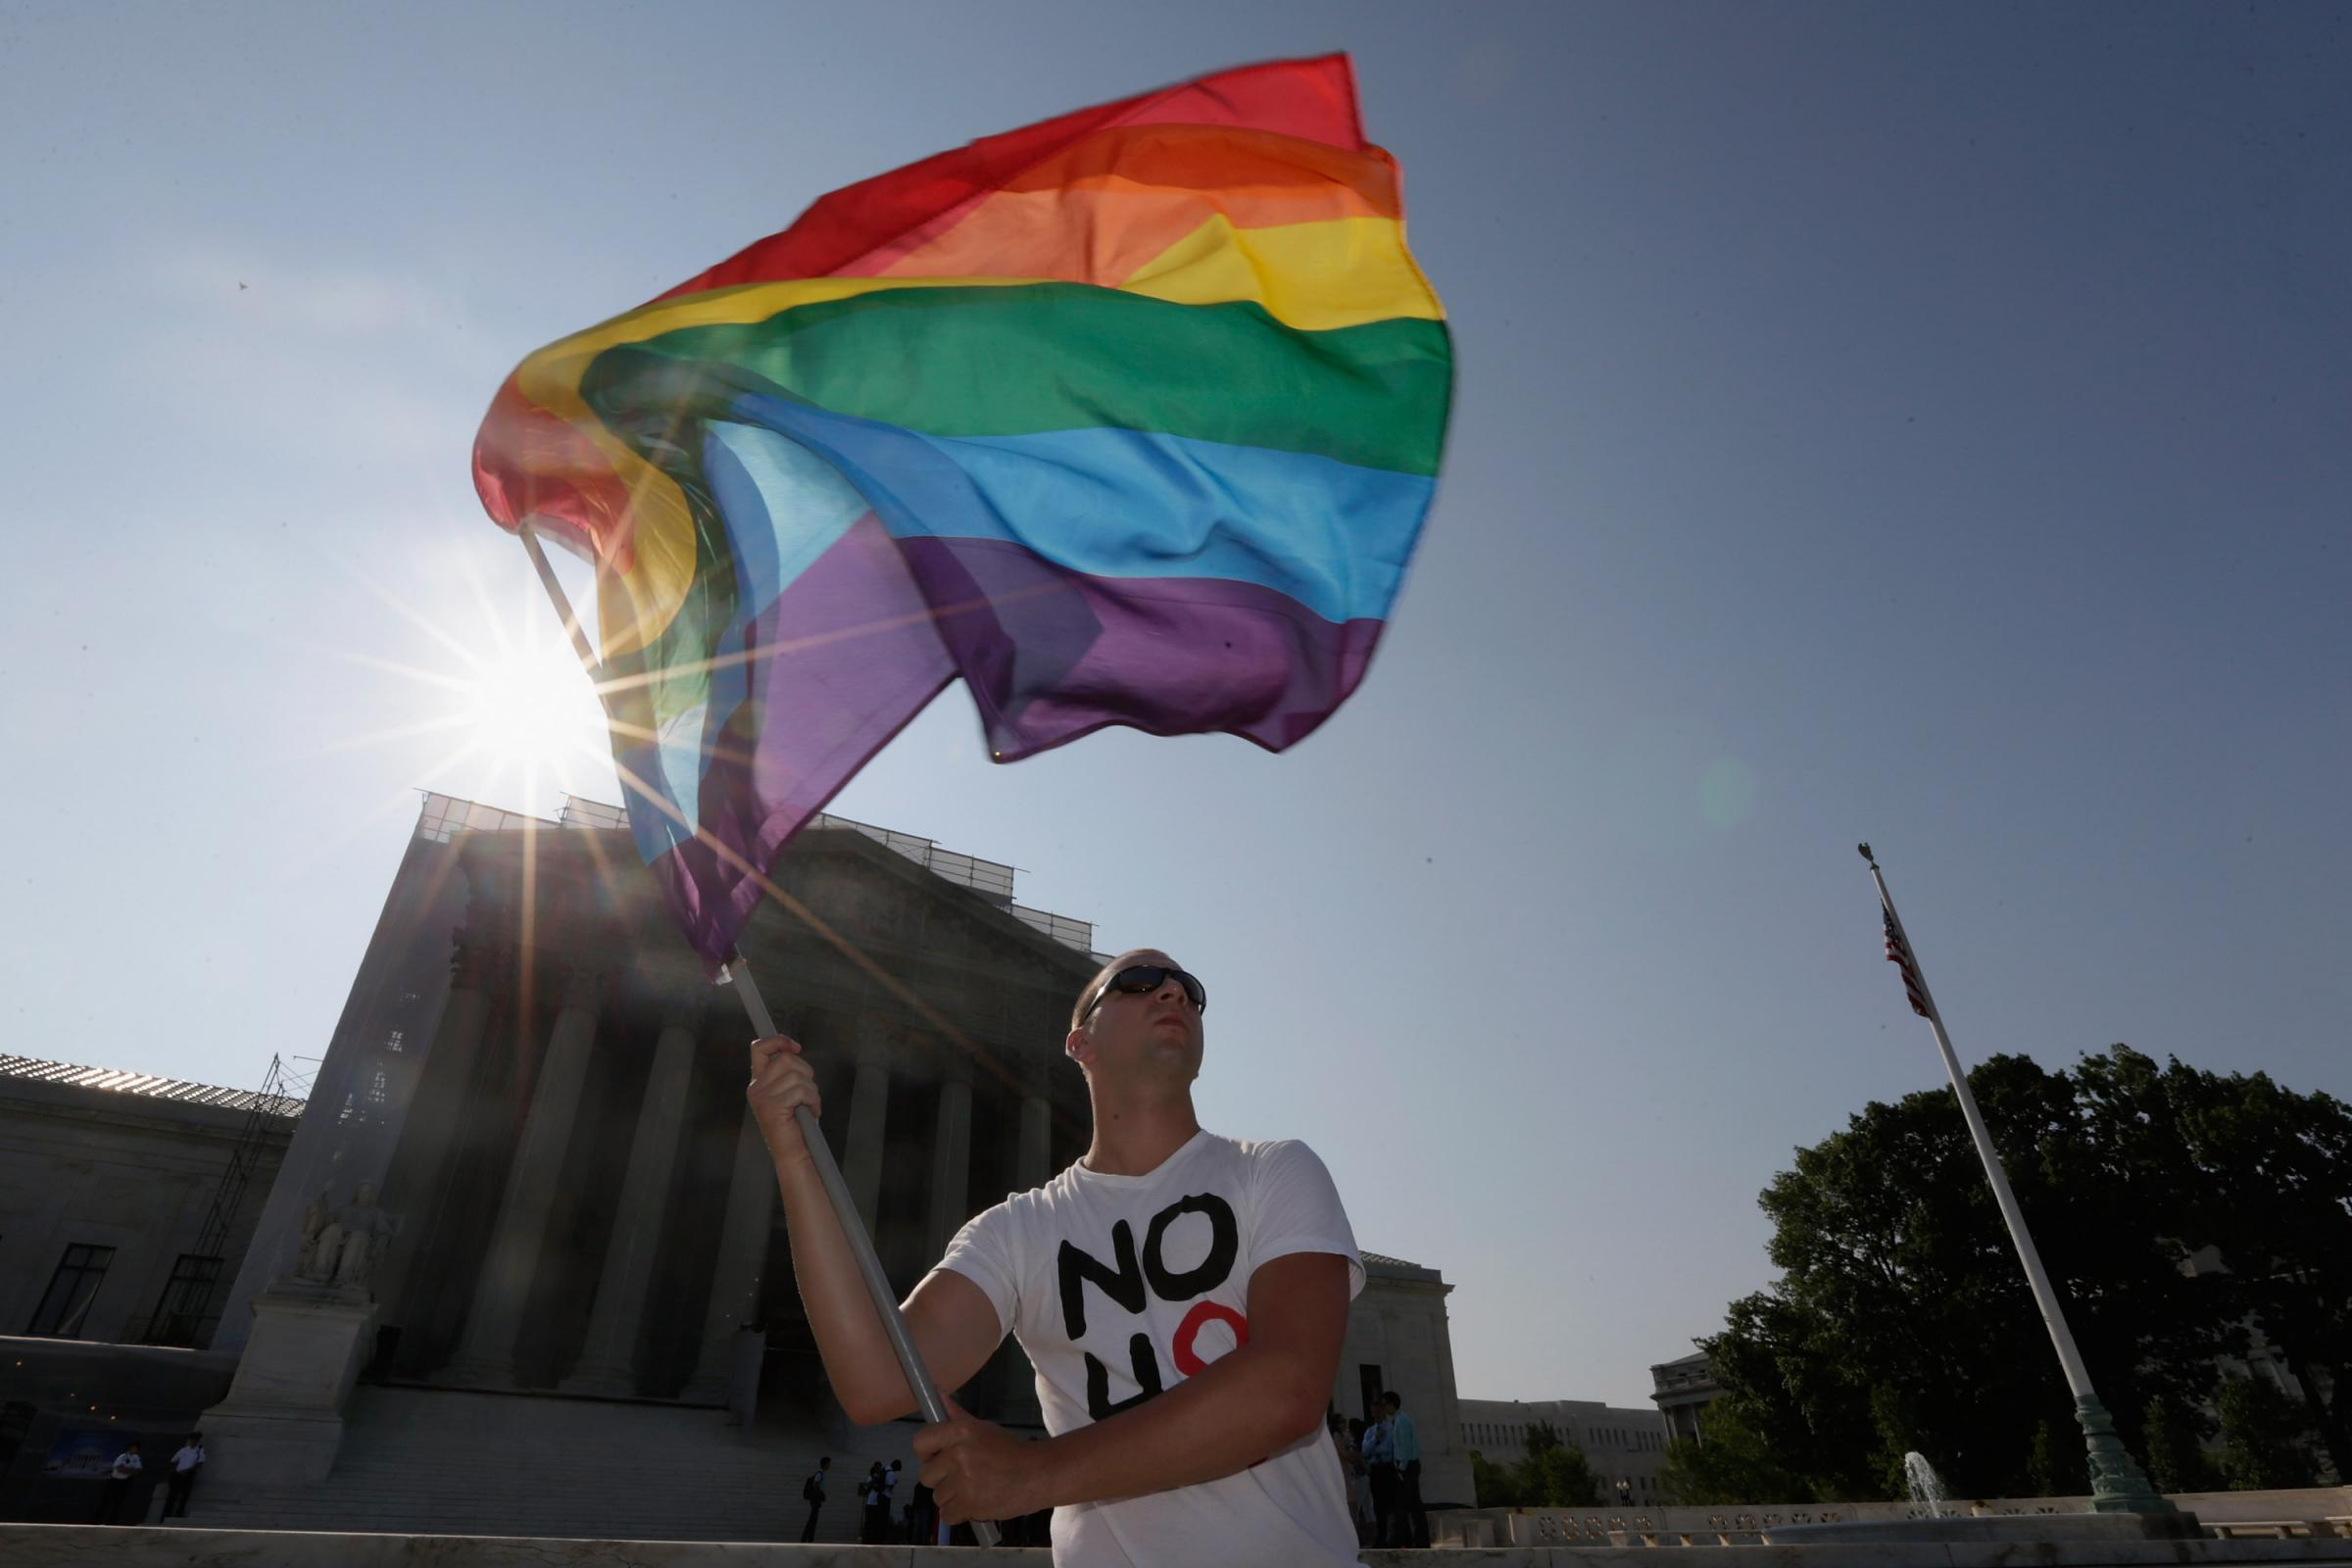 construction ism and gay marriage Same-sex marriage laws differ from state to under the state constitution's common benefits clause, to the same benefits and protections as married opposite.